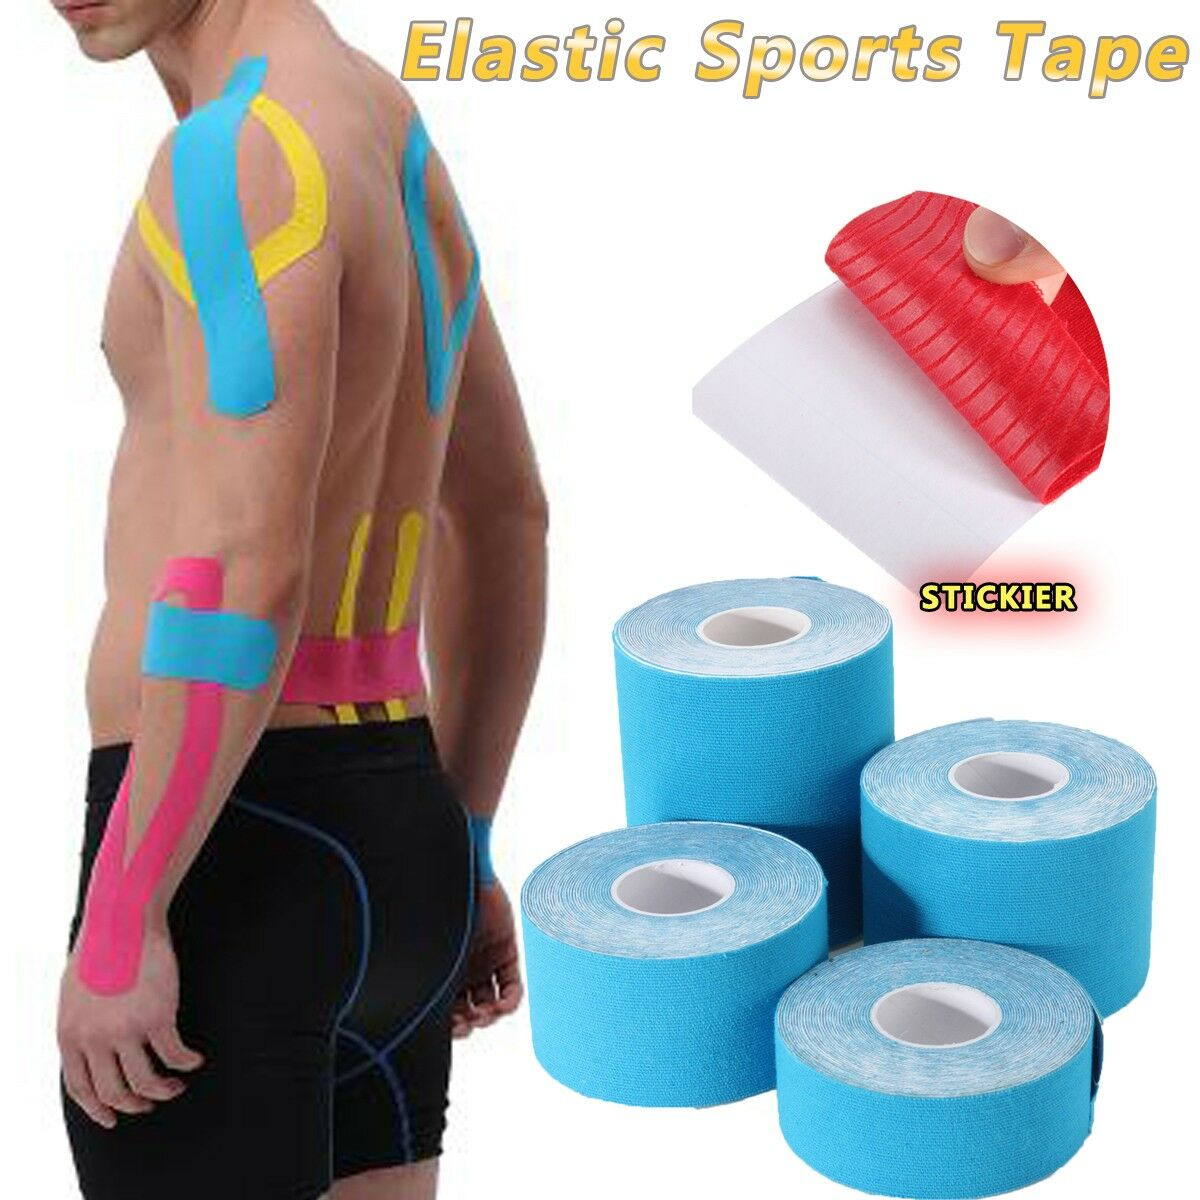 1pc 5m Self-adhesiv Elastic Sport Muscle Sport Tape Bandage Physio Strain Support Pain Relief Roll